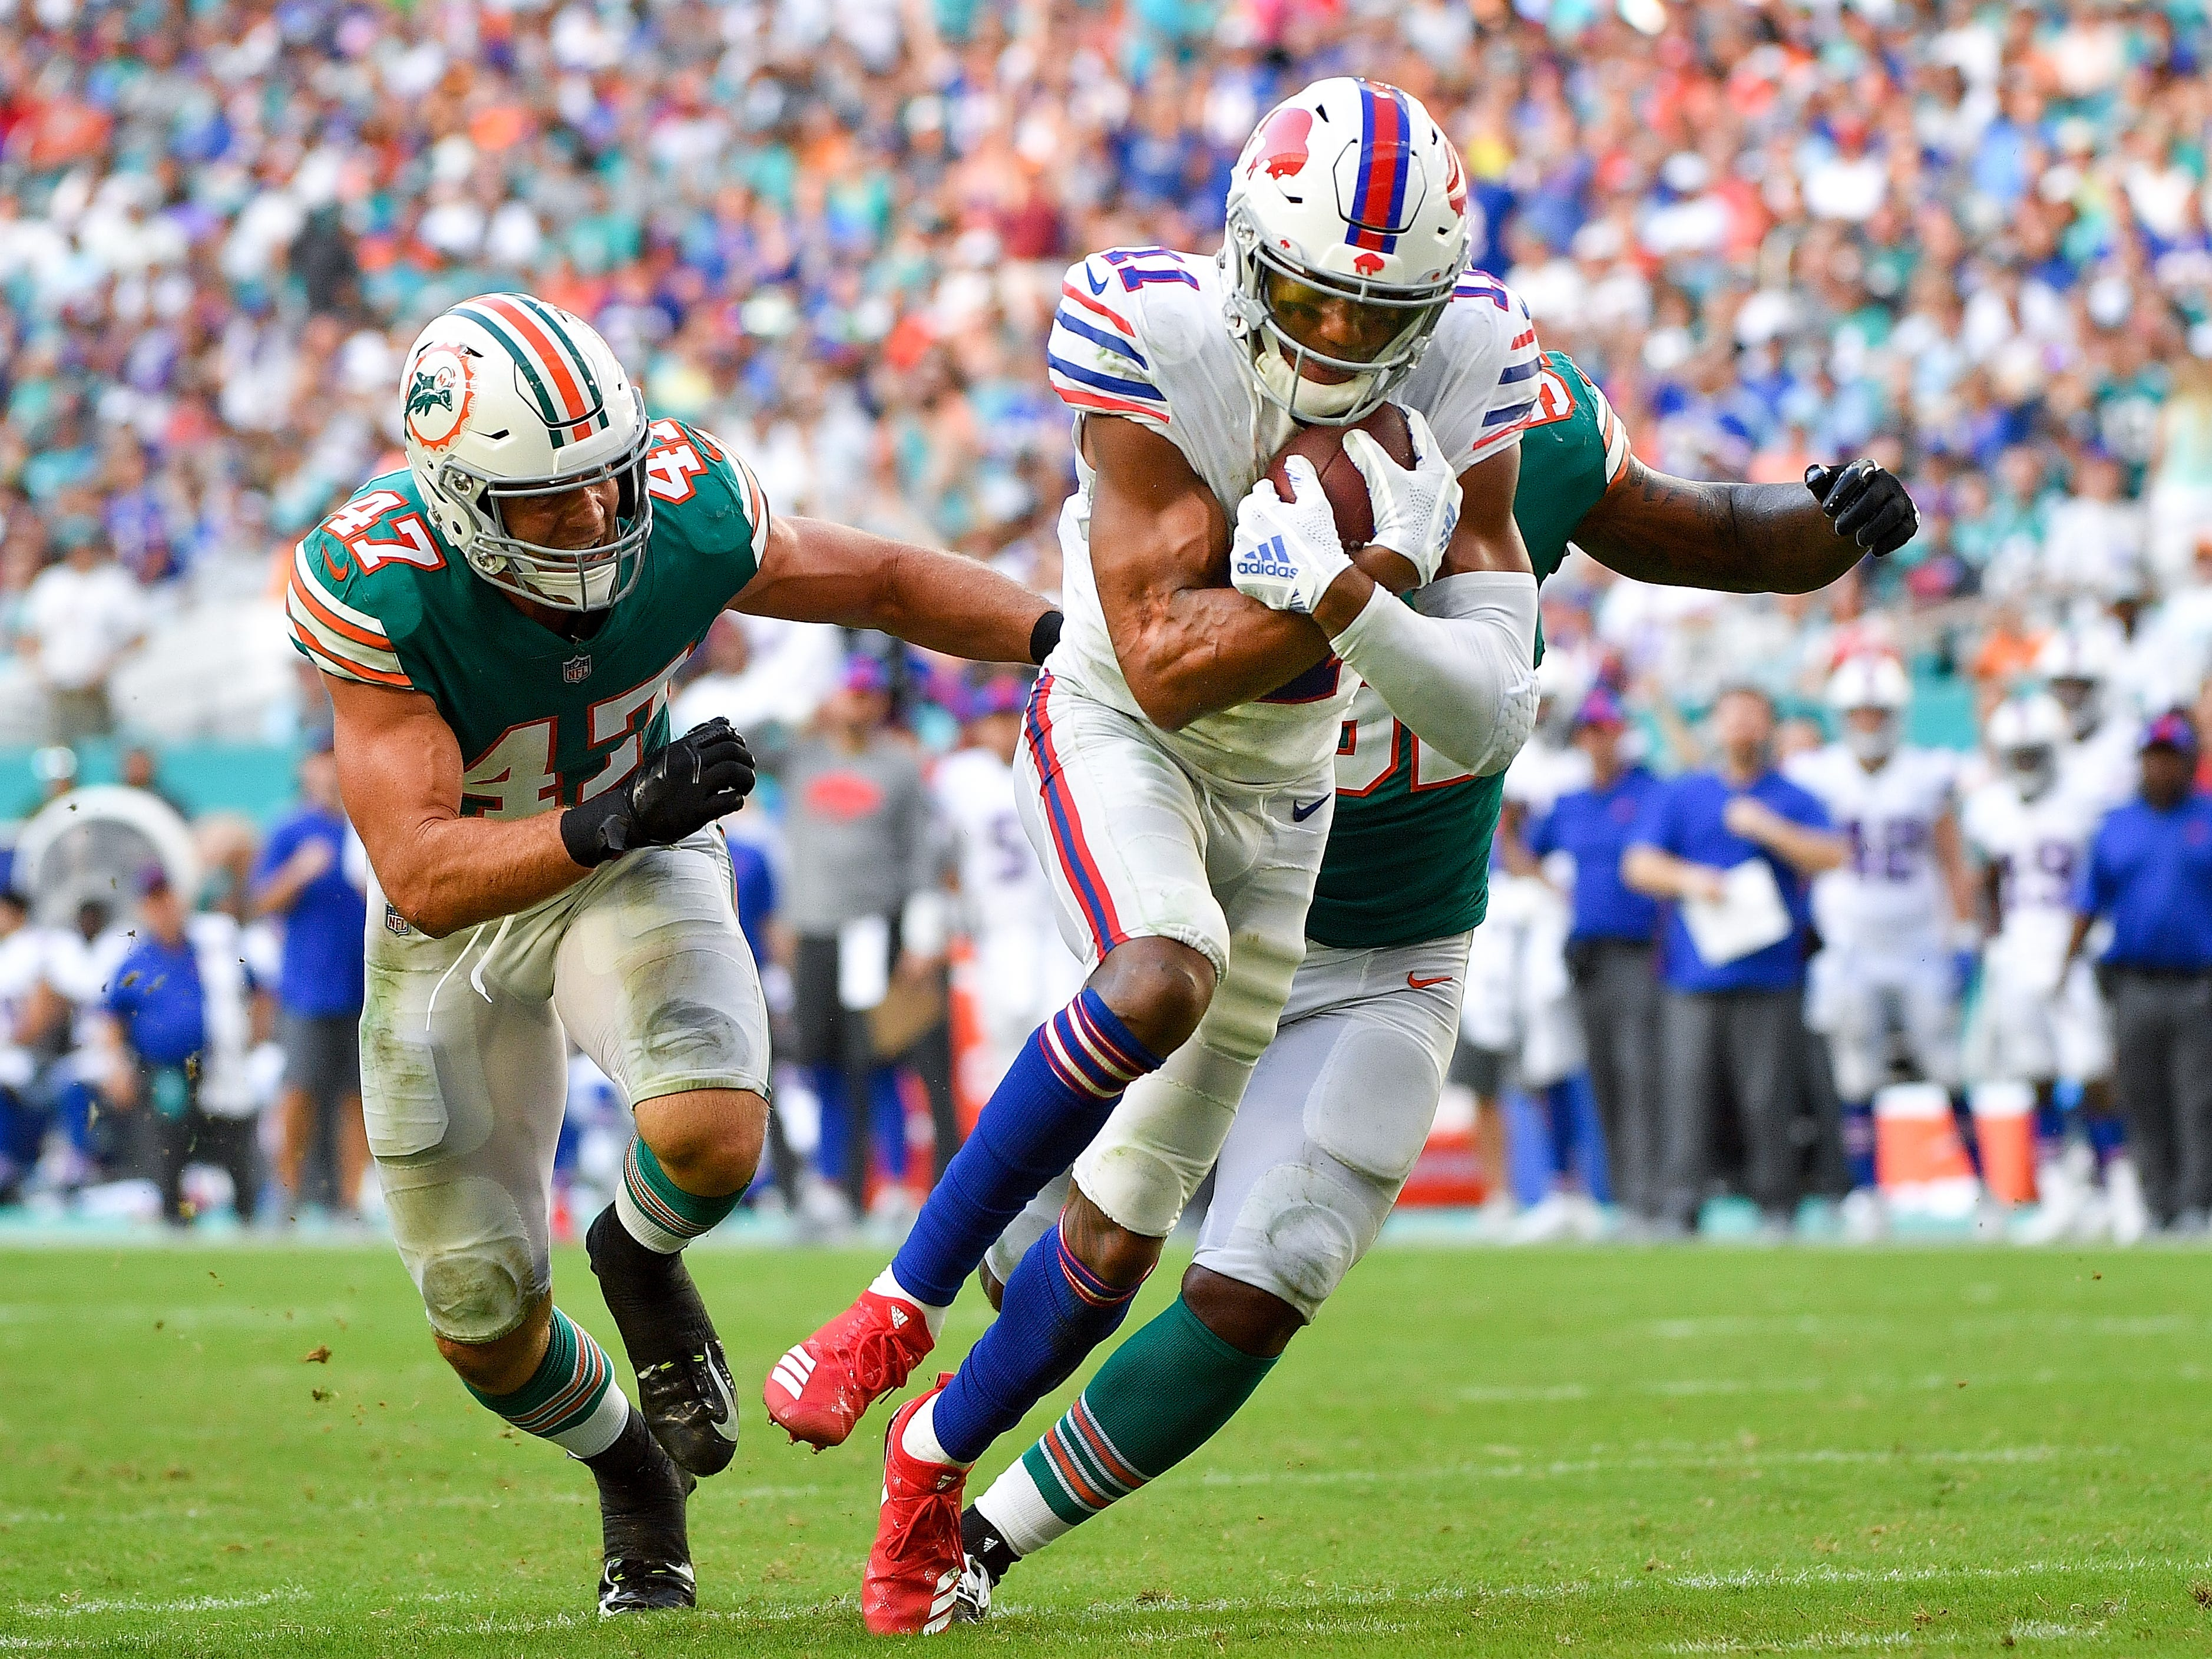 MIAMI, FL - DECEMBER 02: Zay Jones #11 of the Buffalo Bills makes the catch for a touchdown during the fourth quarter against the Miami Dolphins at Hard Rock Stadium on December 2, 2018 in Miami, Florida. (Photo by Mark Brown/Getty Images)